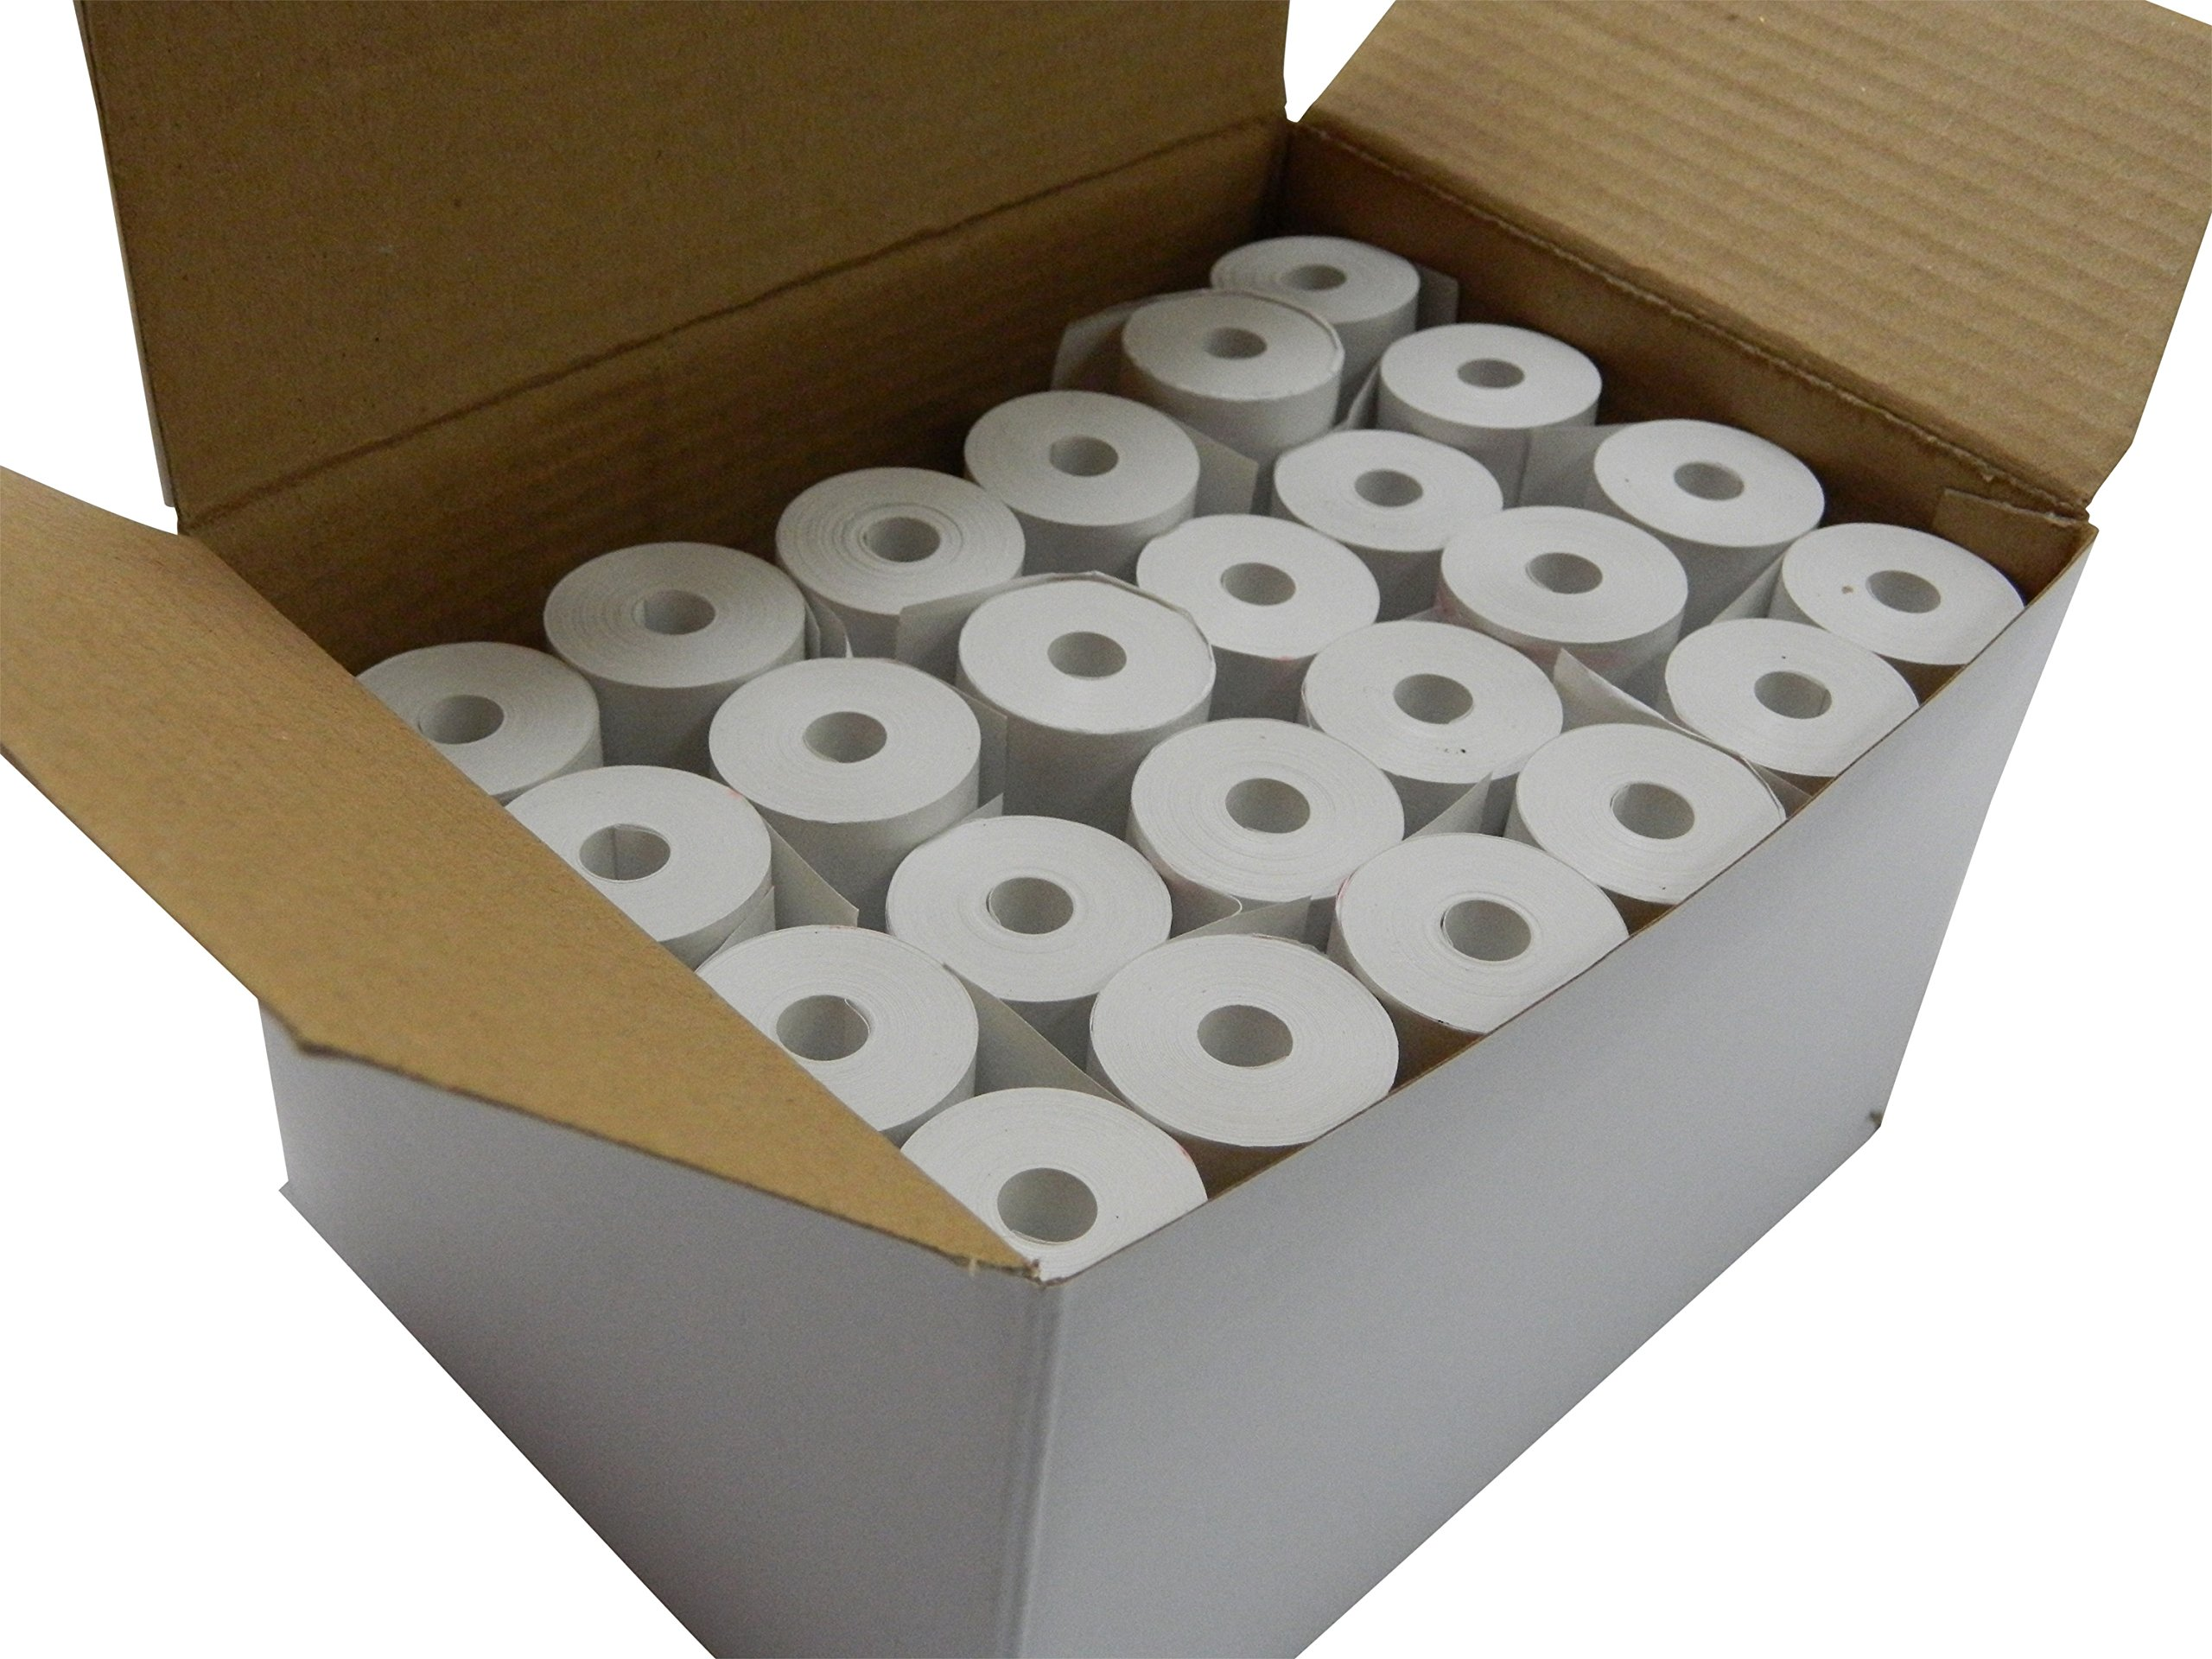 POS1 2 1/4 x 30 ft x 25mm diameter BPA Free Thermal Paper 24 CORELESS Rolls by POS1